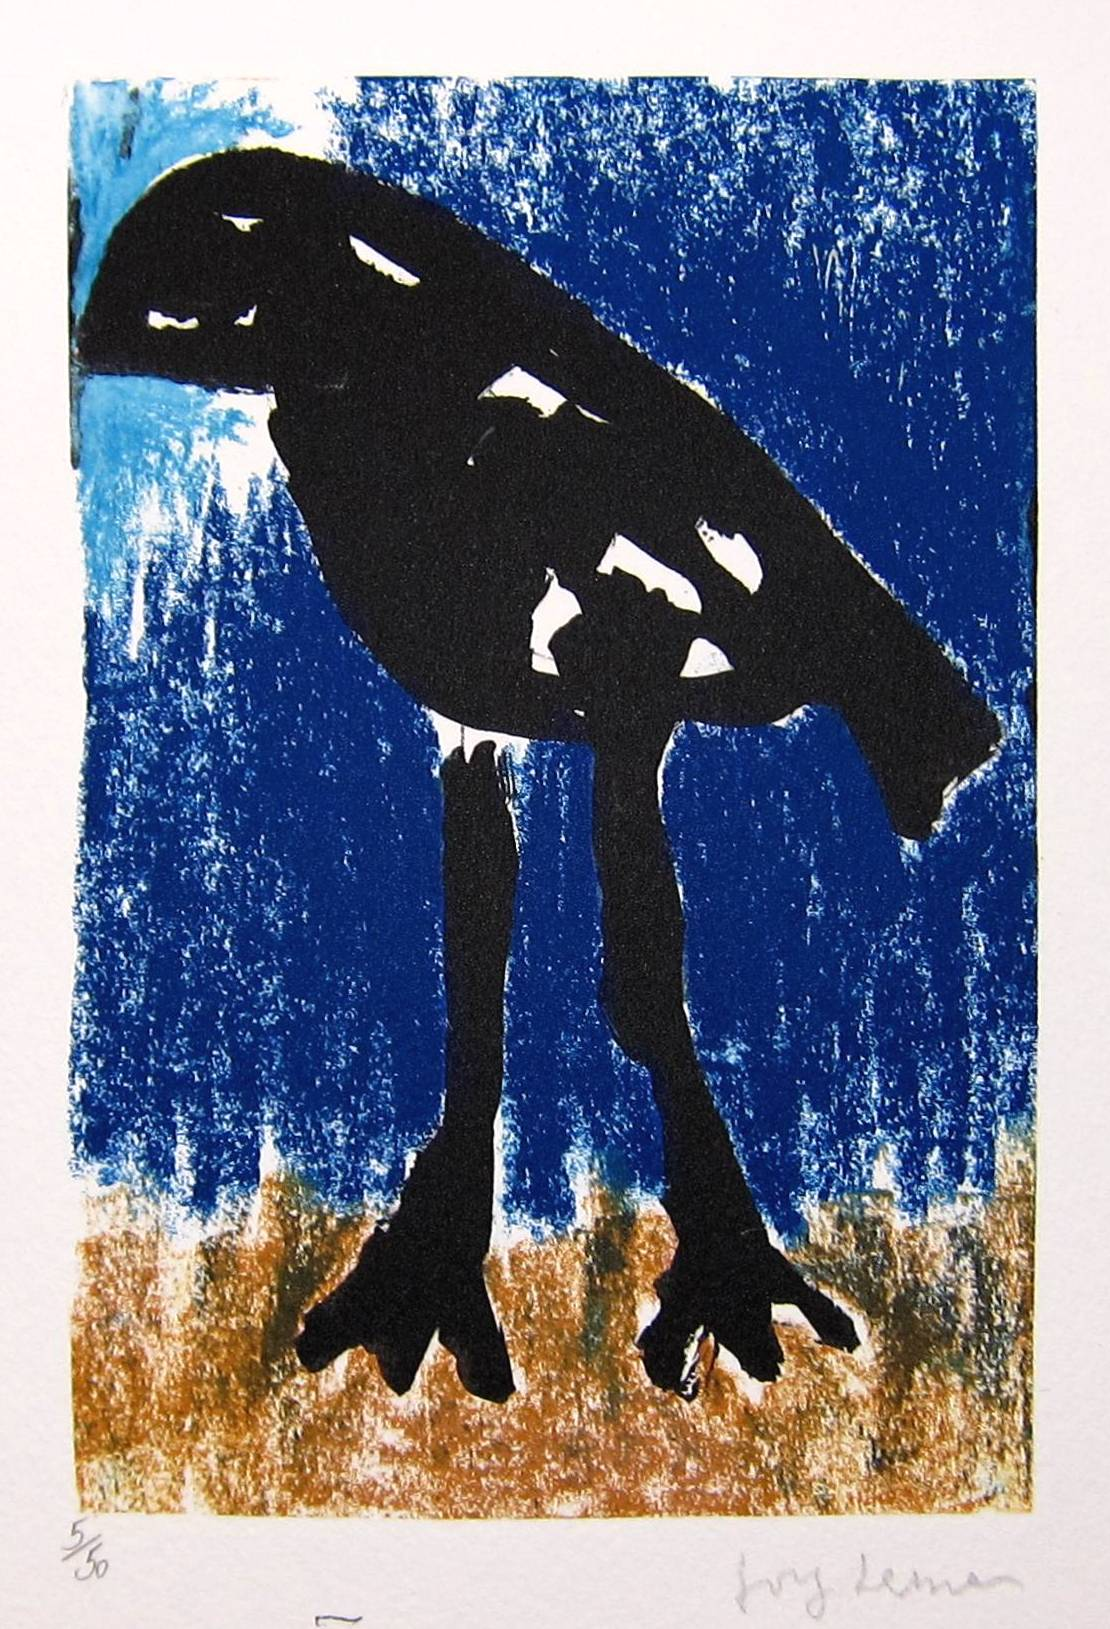 Lot 27 - JOSEF HERMAN R.A. [1911-2000]. The Wanderer [Song of the Migrant Bird], 1999. lithograph, edition of